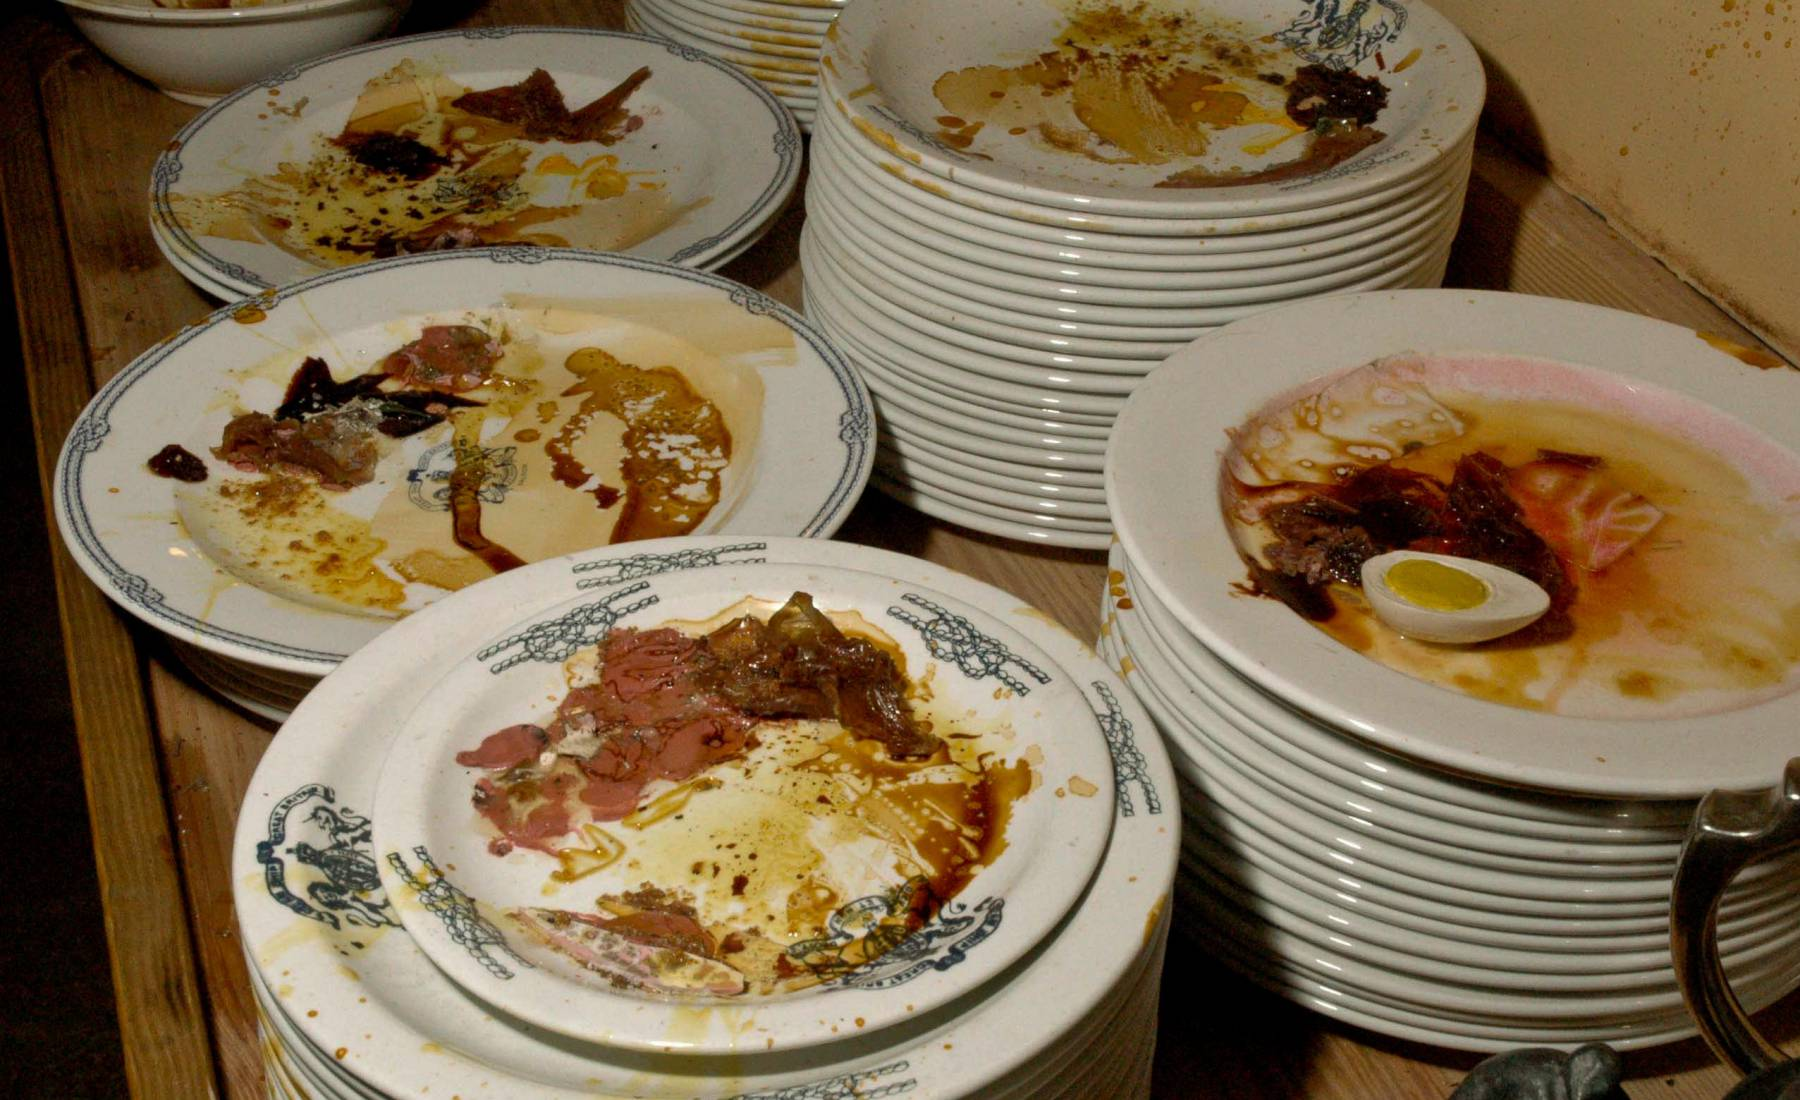 left overs, dirty plates, galley kitchen, s.s. Great Britain, scraps, meat eggs, sauce, china, breakfast